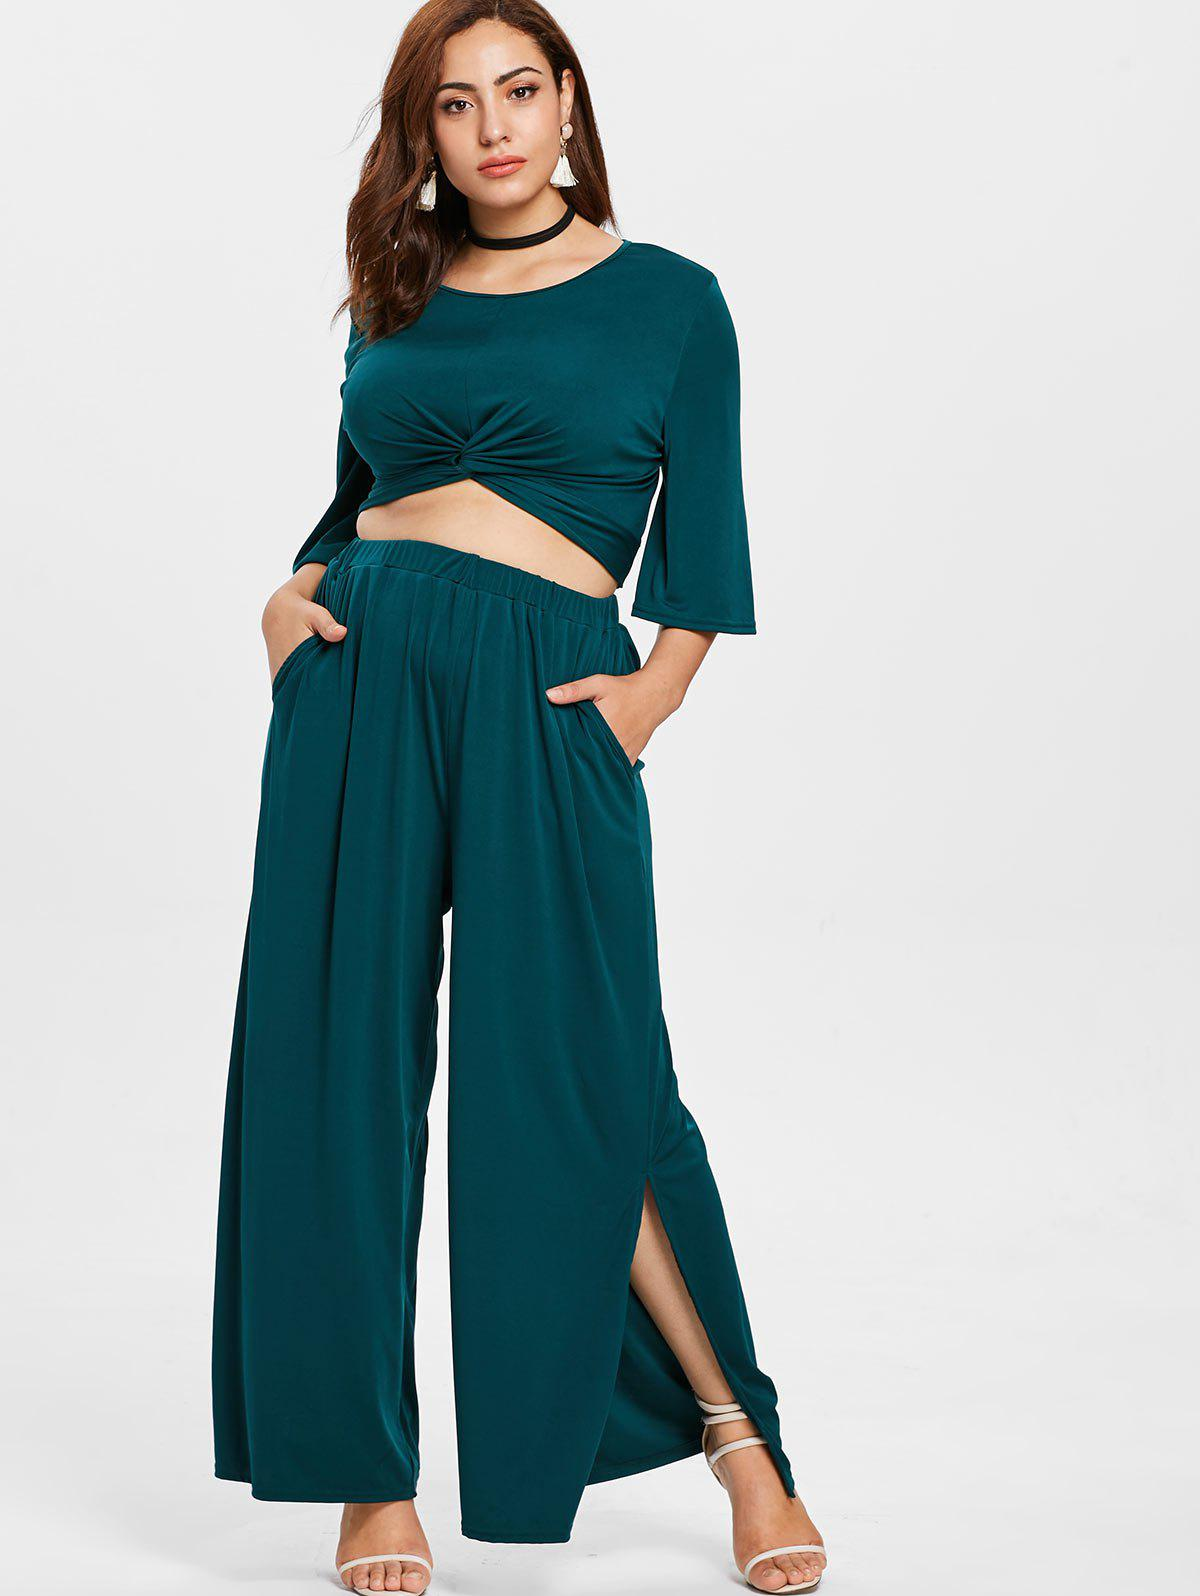 Plus Size Twist Top and Wide Leg Pants